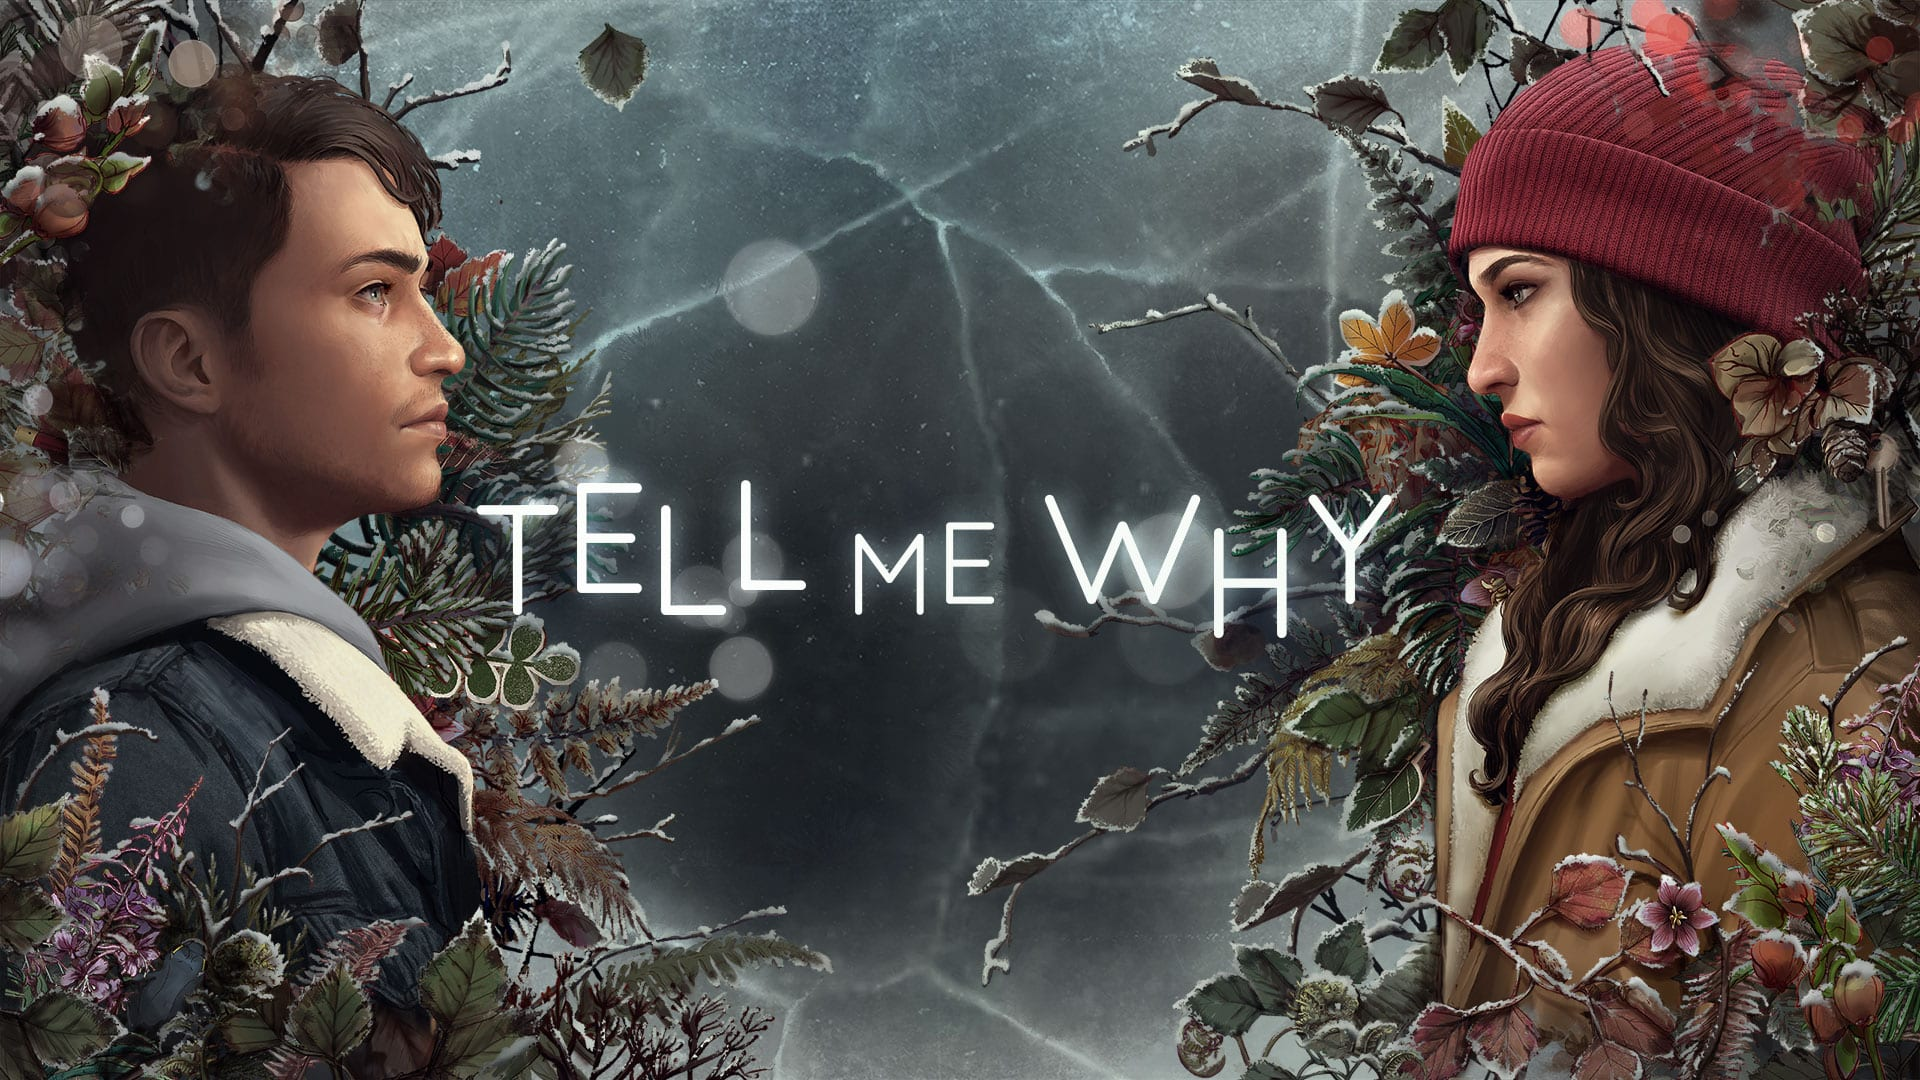 the last of us parte 2 - Tell me why promo